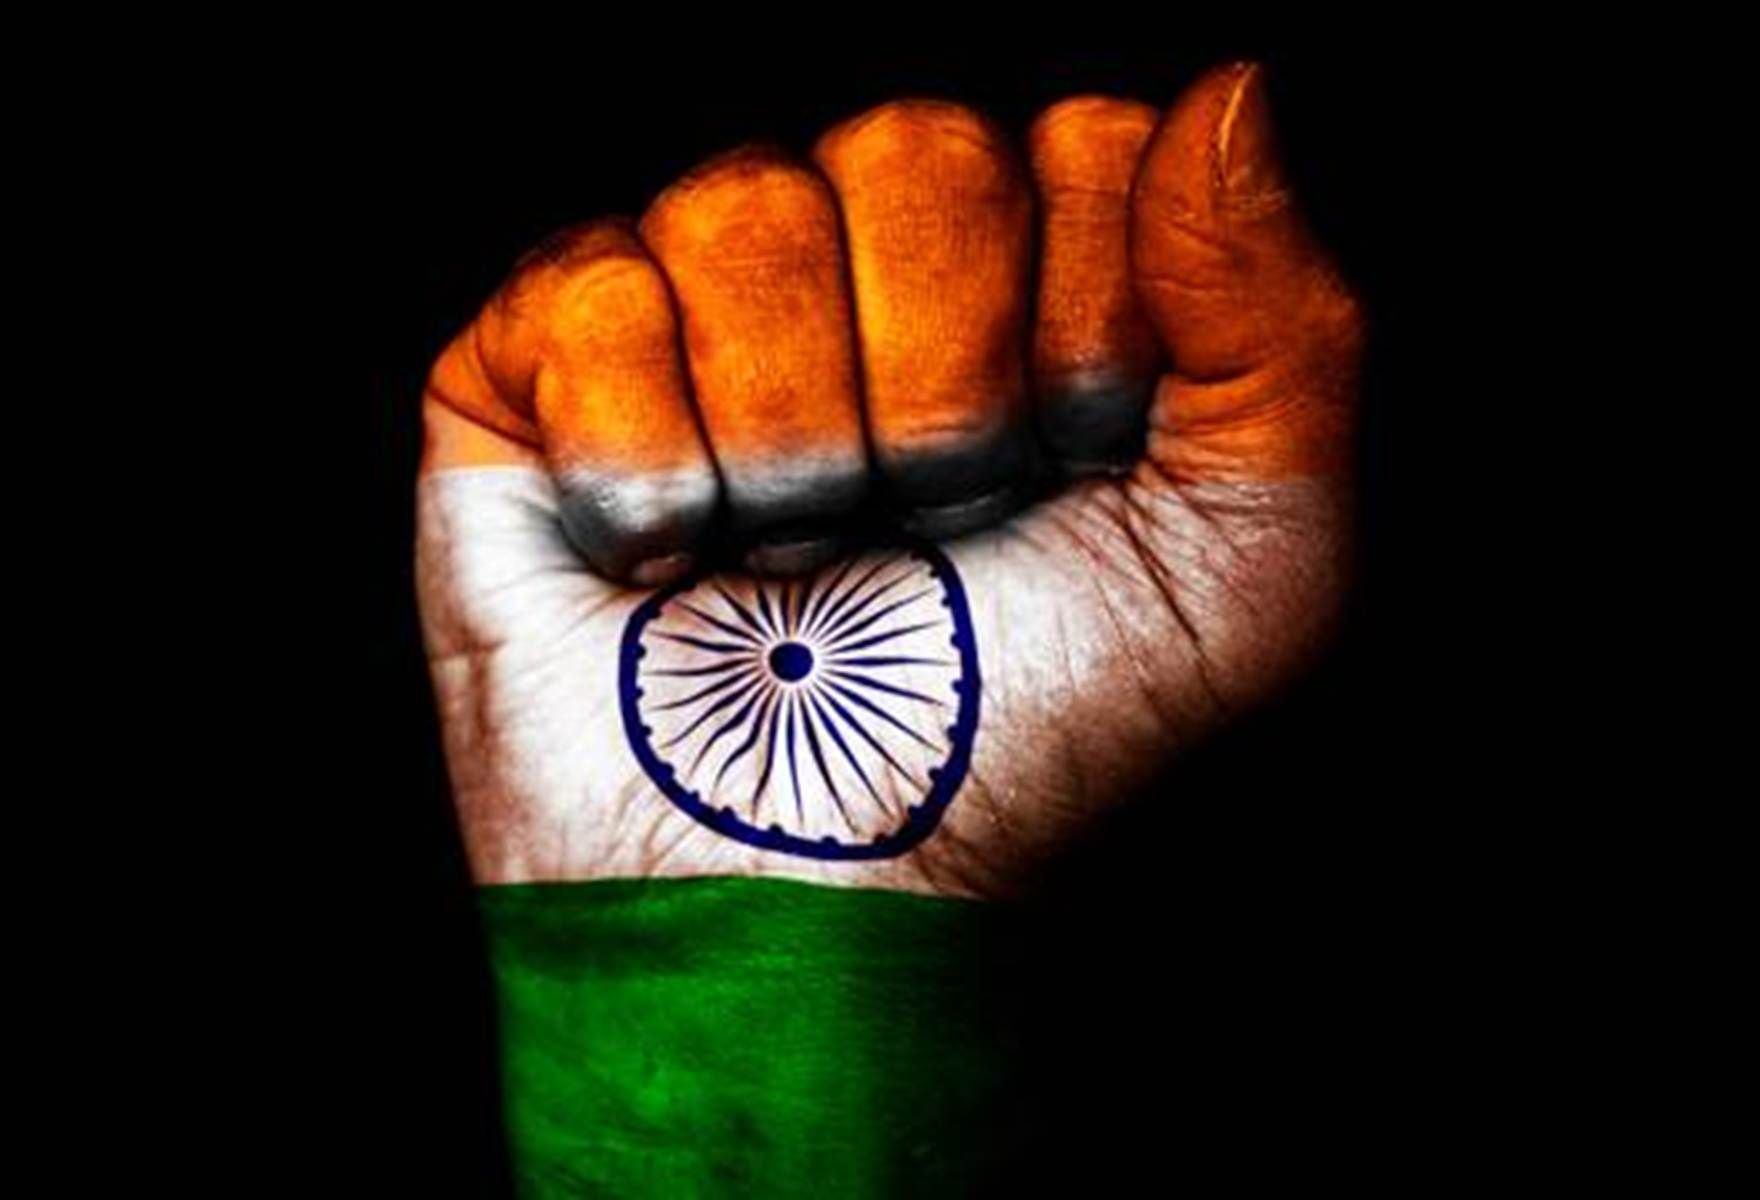 For Indian Flag Hd Animation: Indian Flag Animated Wallpaper